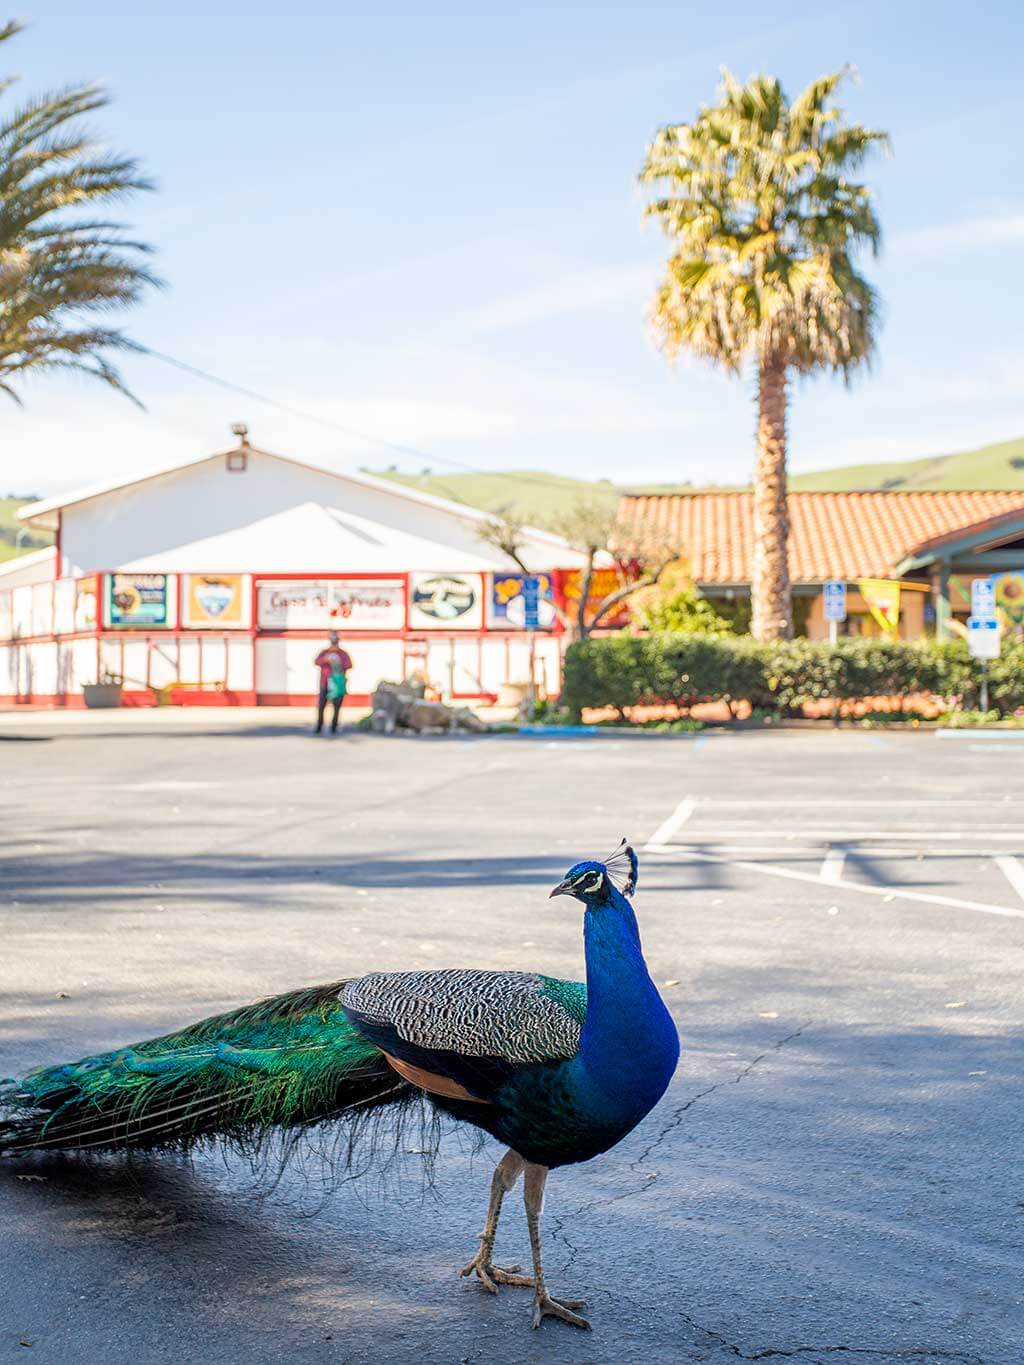 drive-swim-fly-california-casa-de-fruita-roadside-attraction-pacheco-pass-highway-pit-stop-peacock